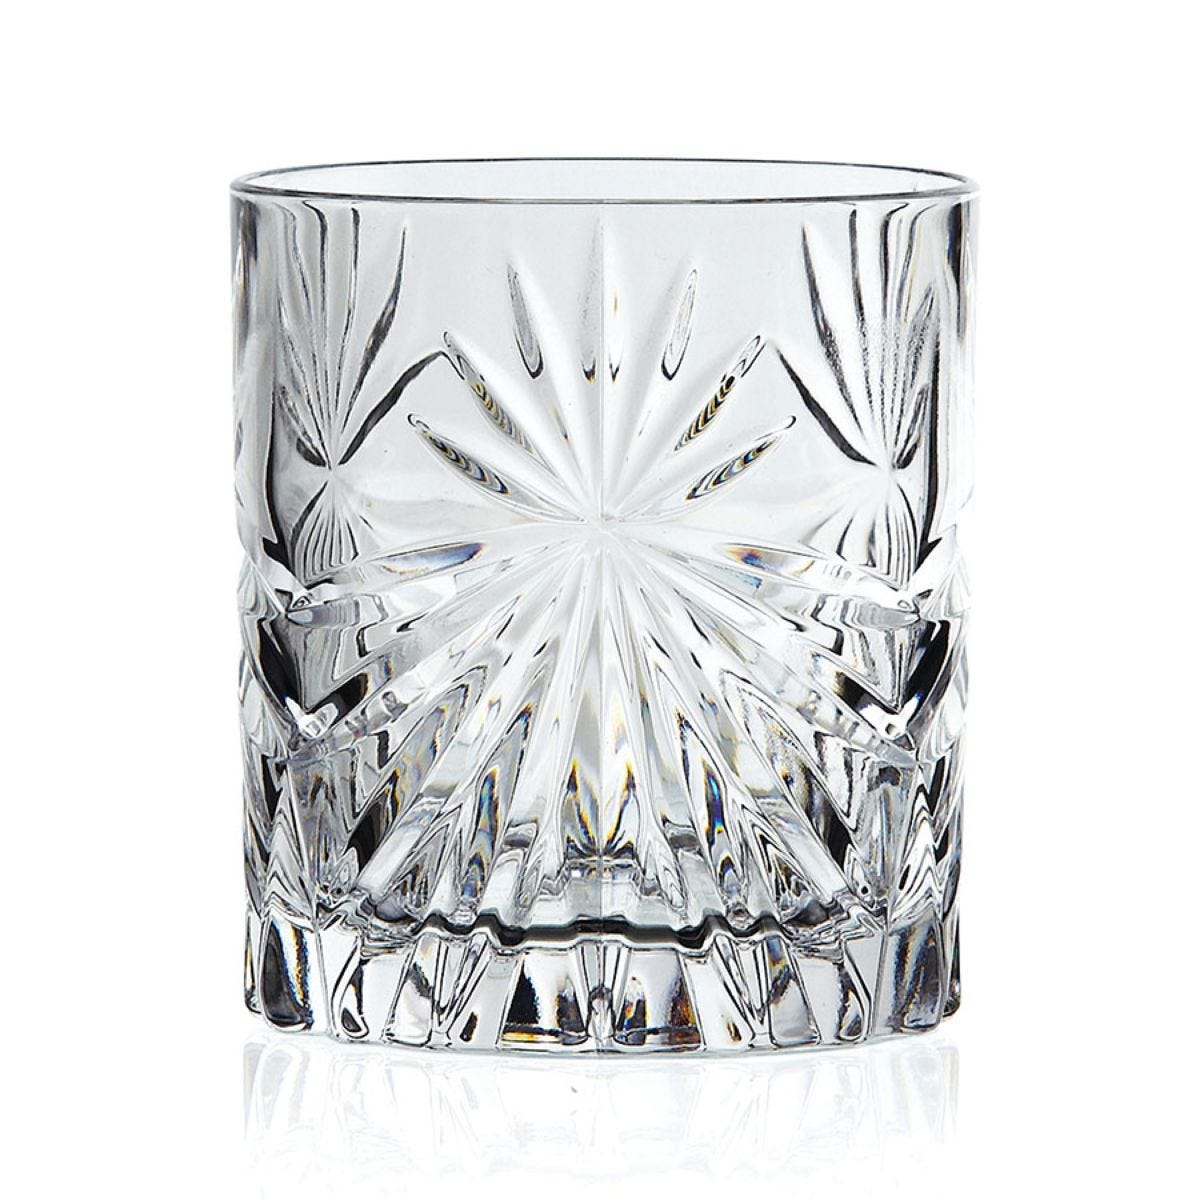 RCR 320ml Oasis Crystal Short Whisky Tumblers Glasses - Set of 6